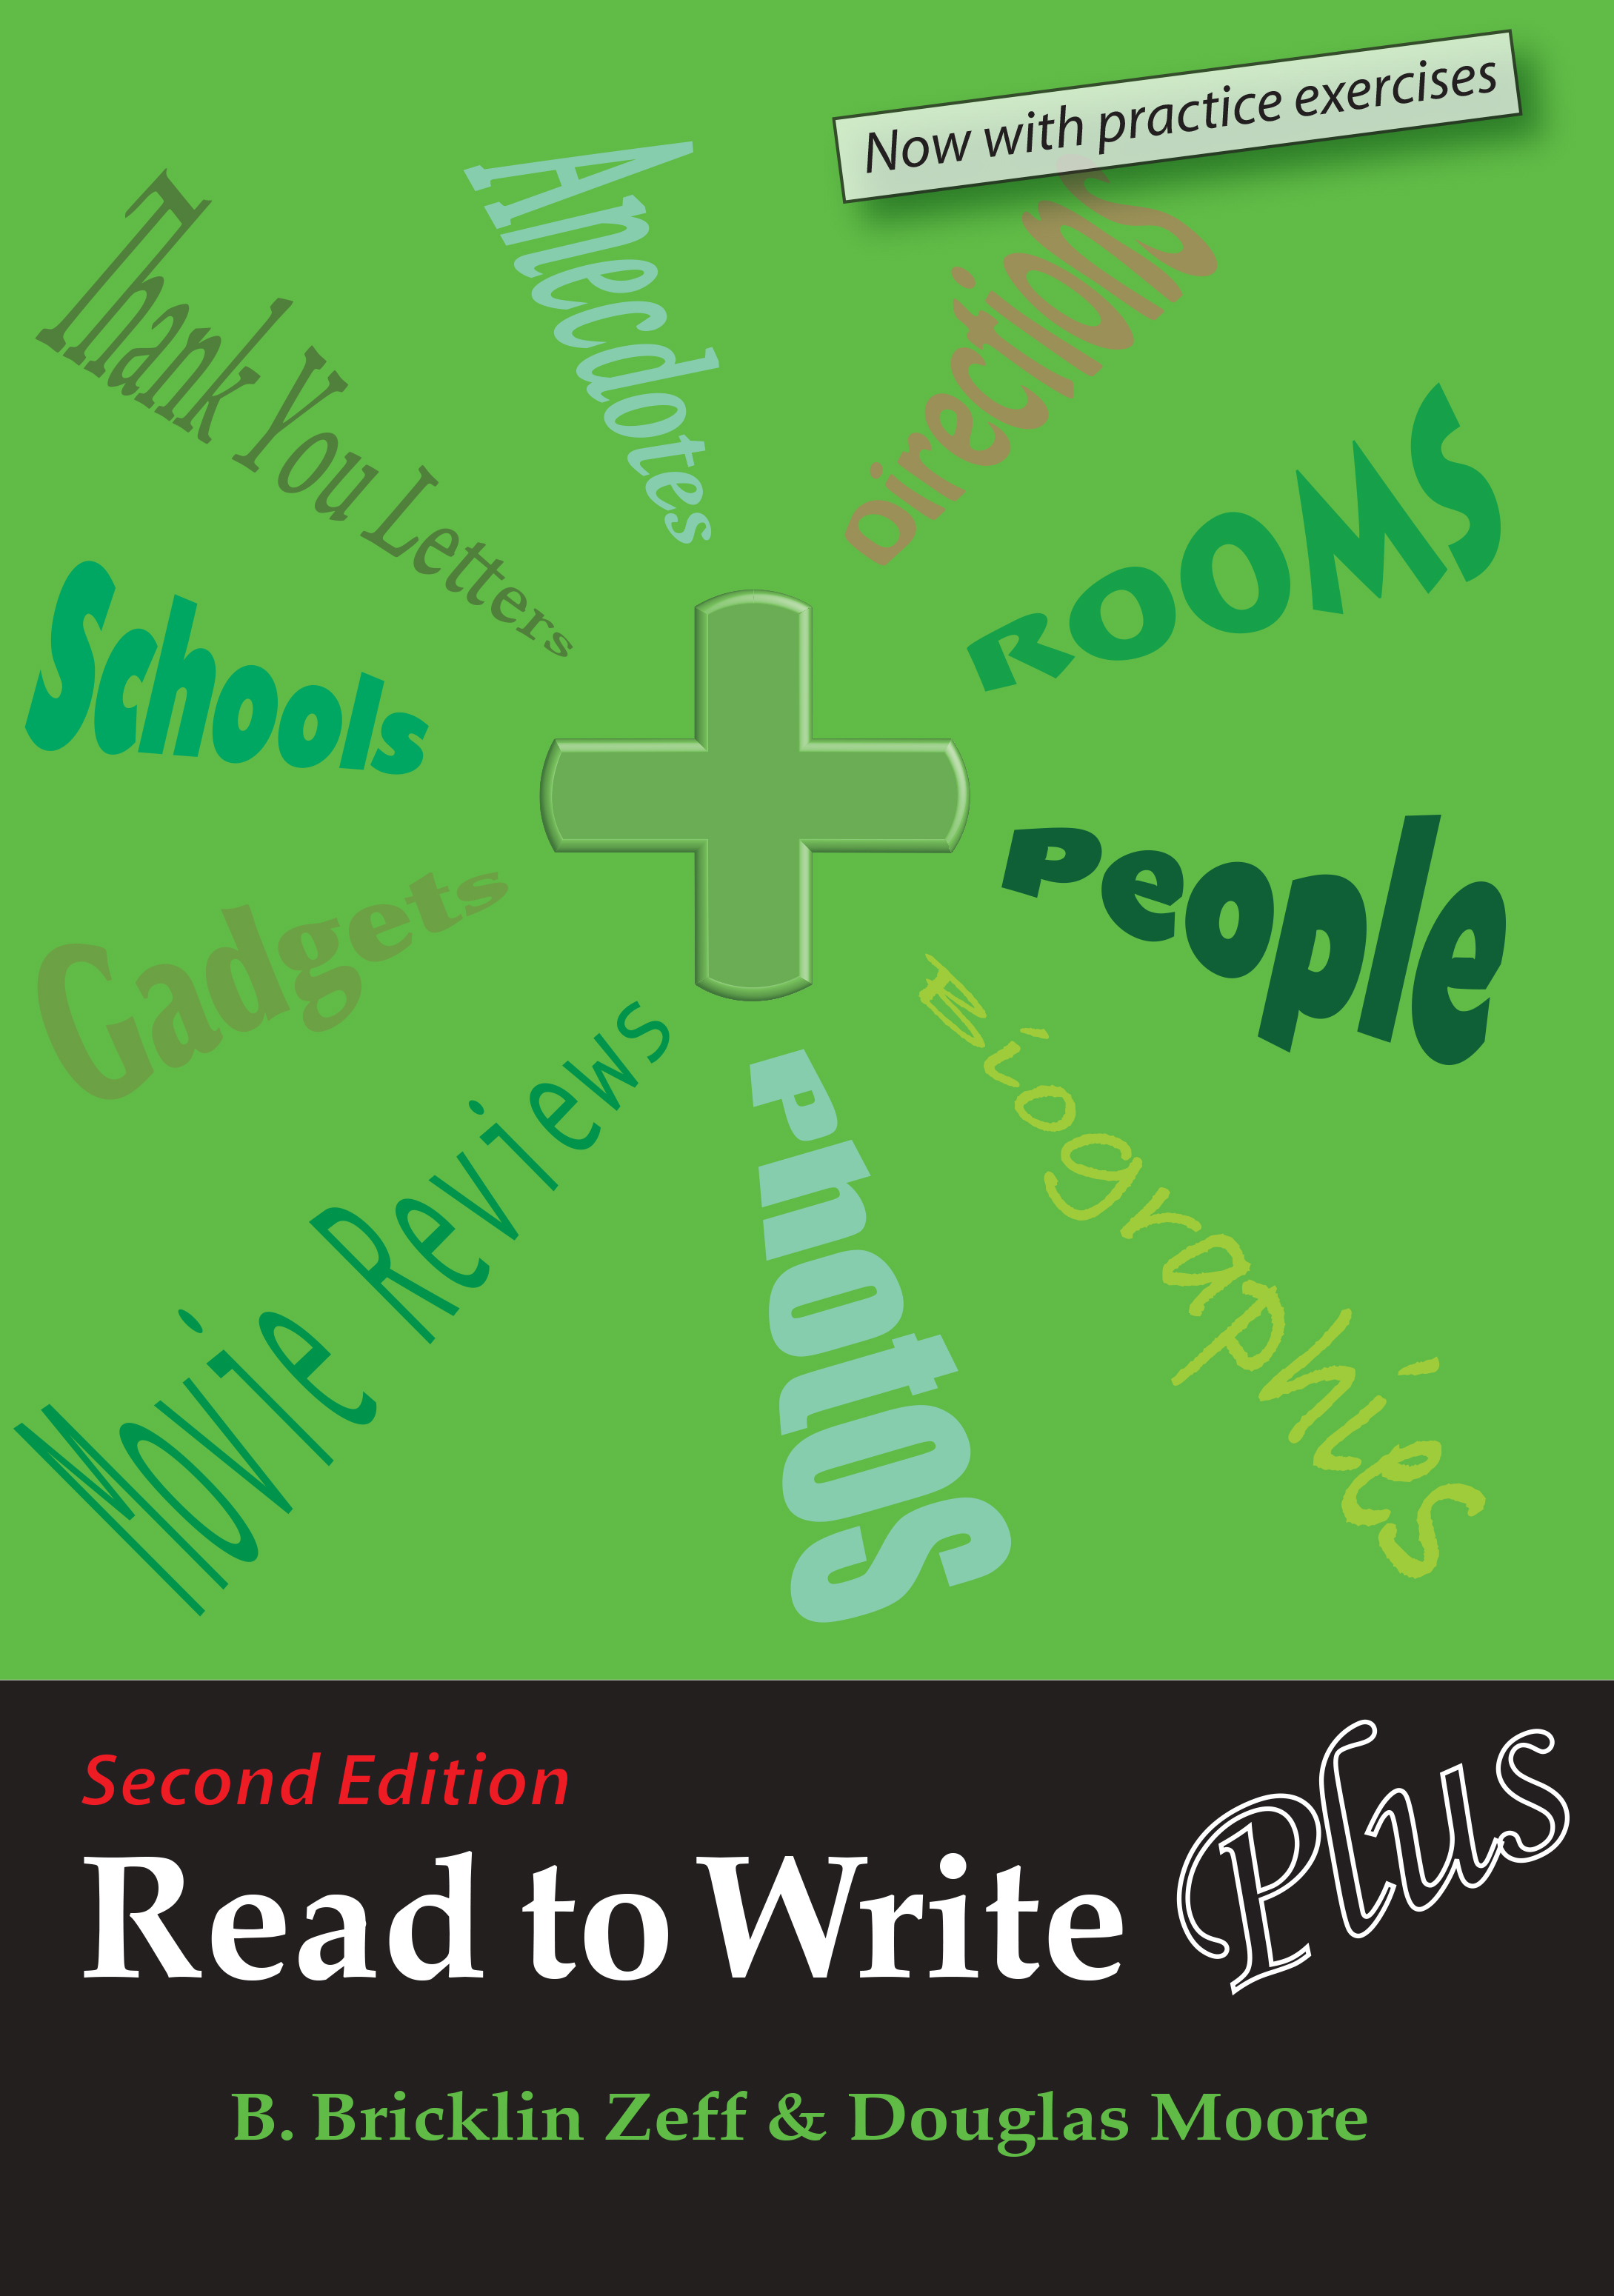 Read to Write Plus by B. Bricklin Zeff & Douglas Moore